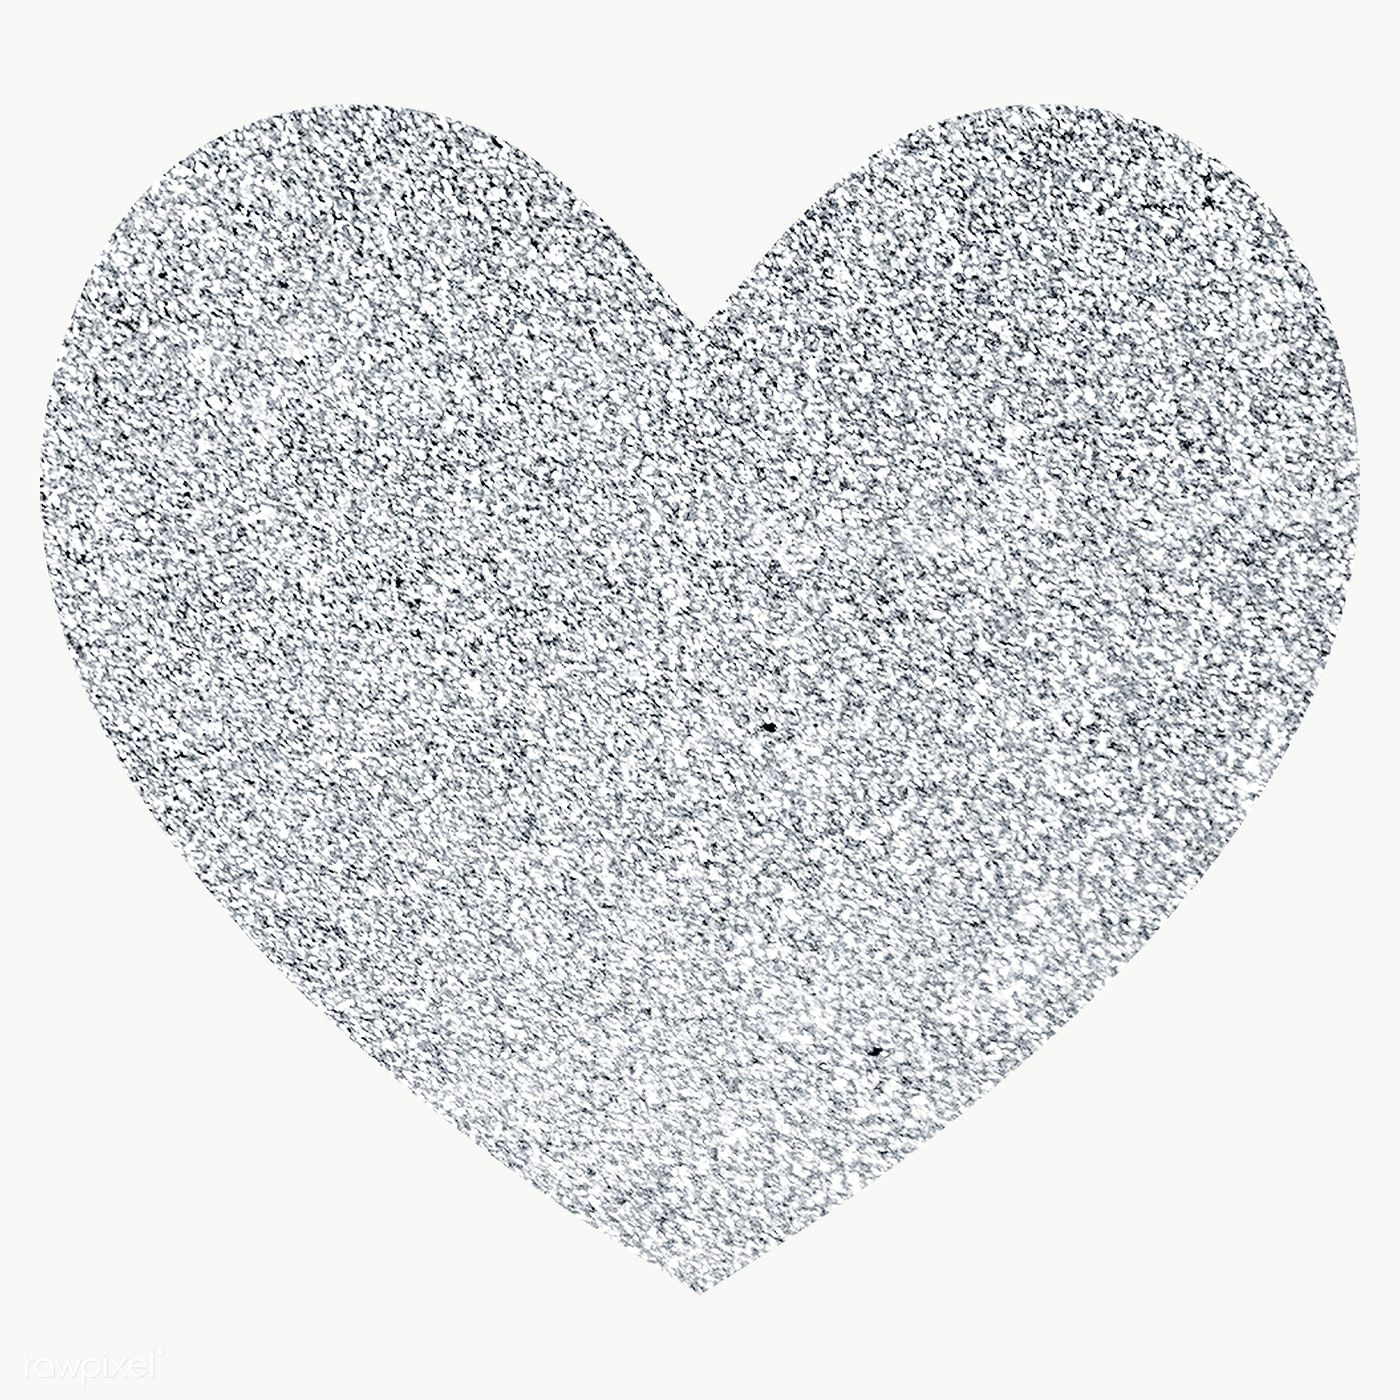 Glitter Heart Sticker Transparent Png Free Image By Rawpixel Com Ningzk V Heart Iphone Wallpaper Heart Wall Art Heart Wallpaper